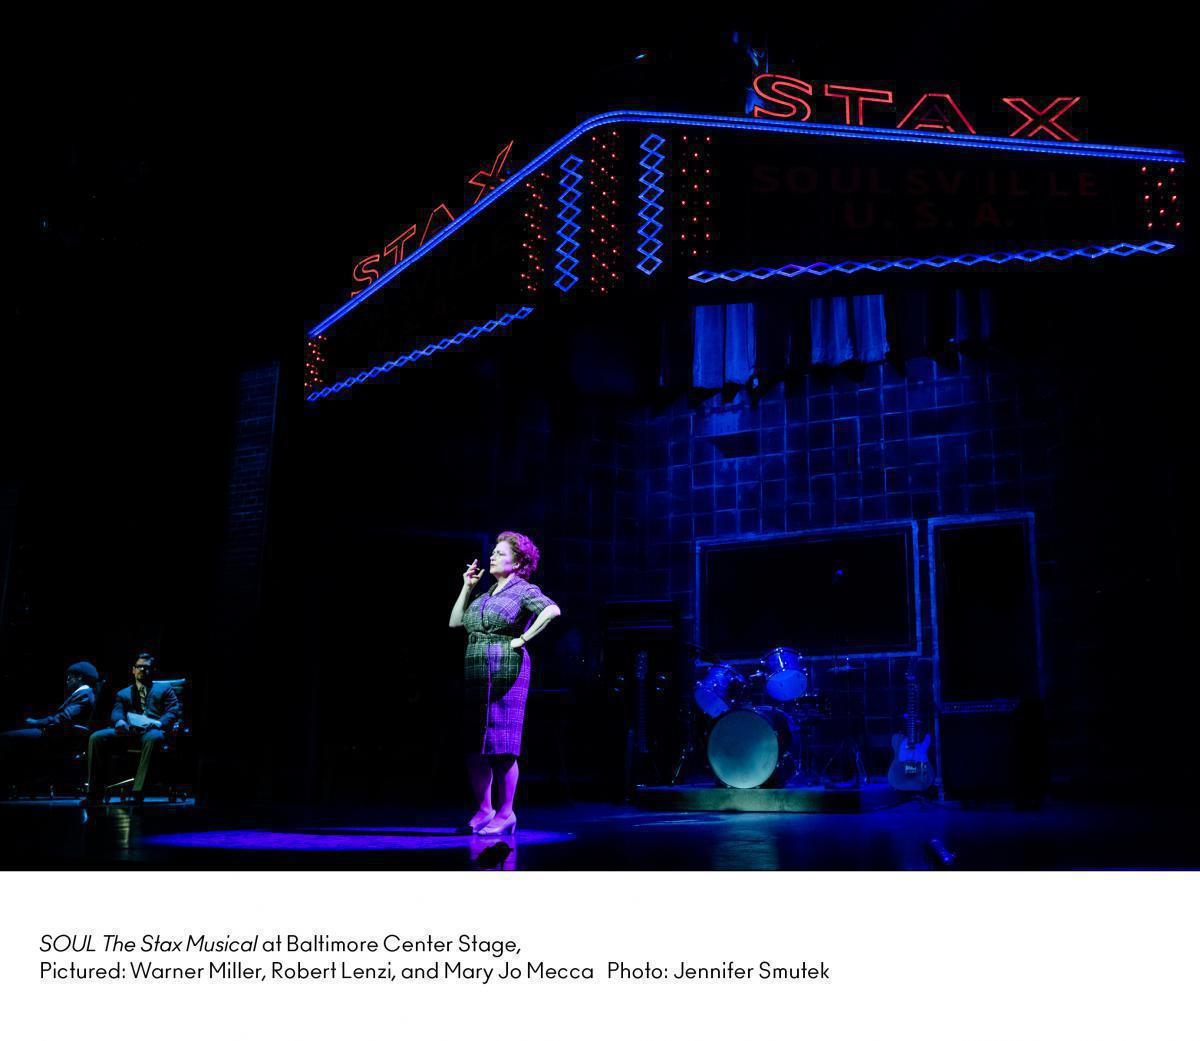 Photo 6 in 'SOUL -  The STAX Musical' gallery showcasing lighting design by Mike Baldassari of Mike-O-Matic Industries LLC